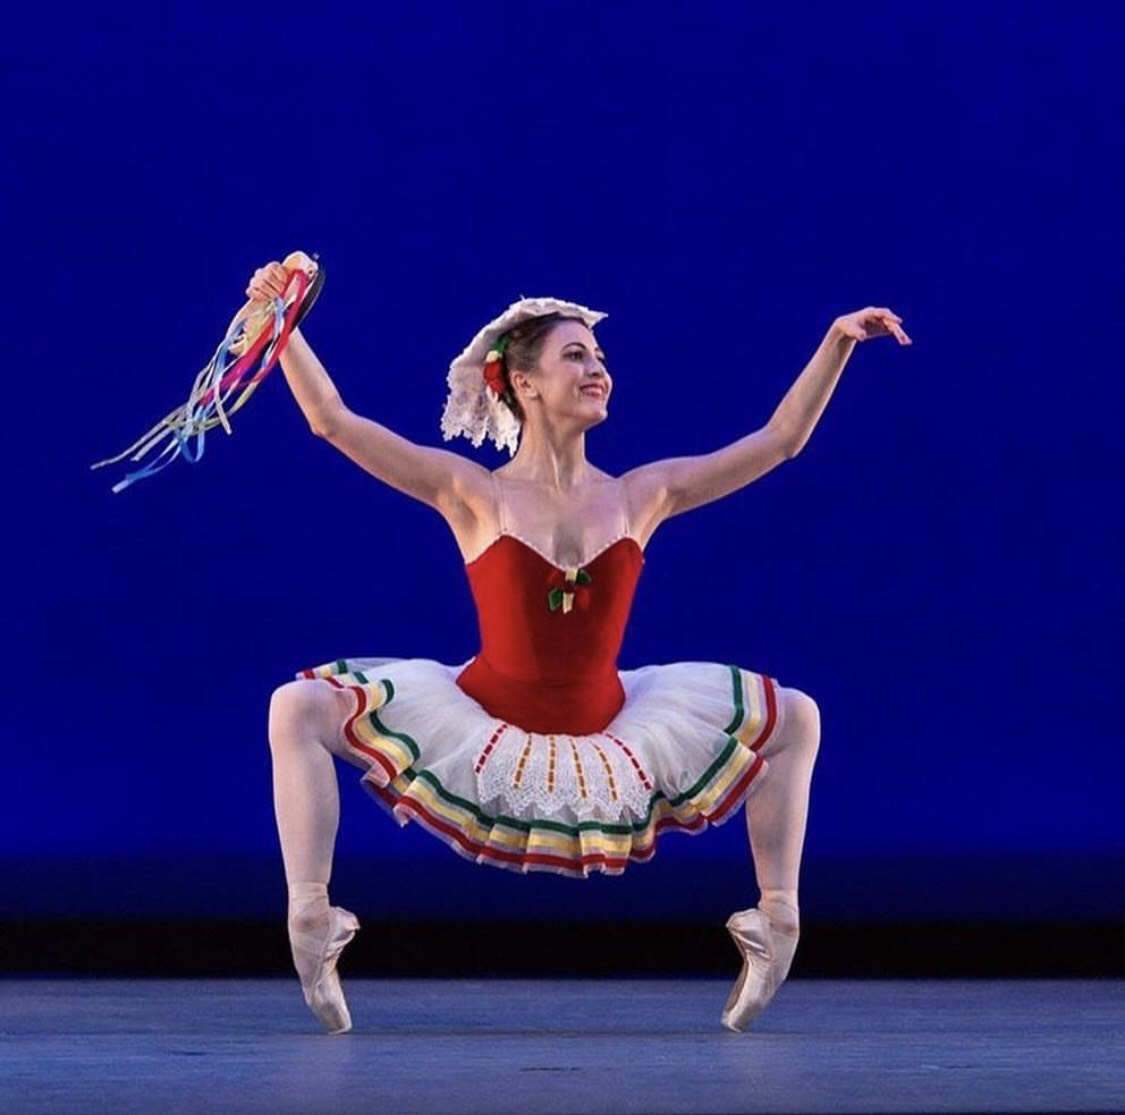 Katherine Barkman, An Evening of Ballet Stars, Photo by Carly Vanderheyden